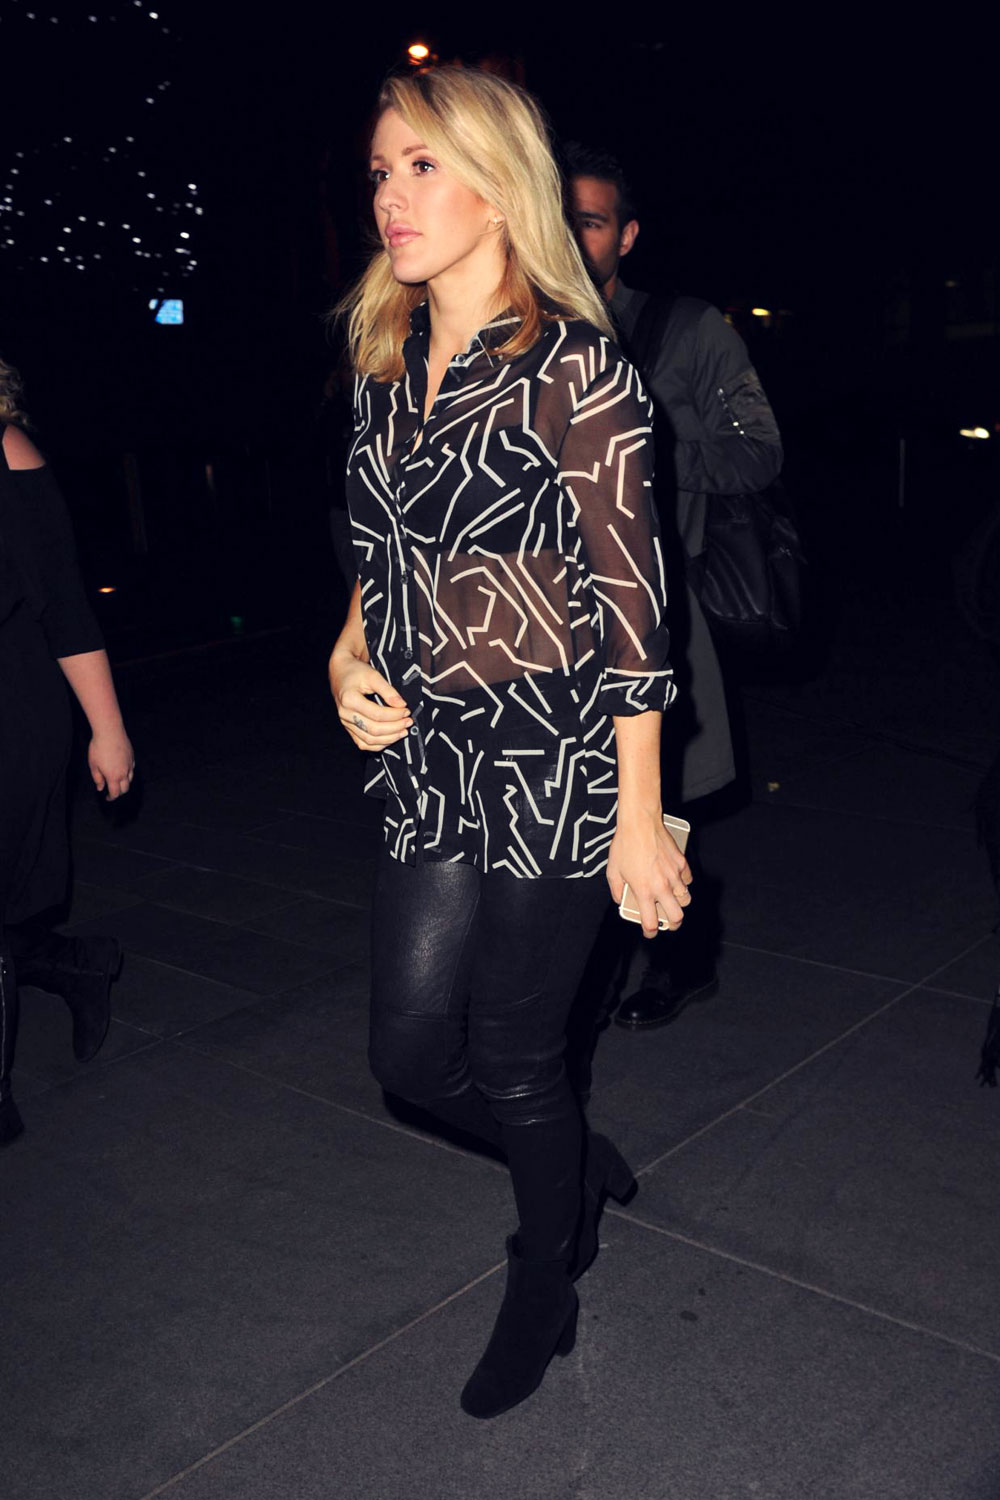 Ellie Goulding out in Manchester